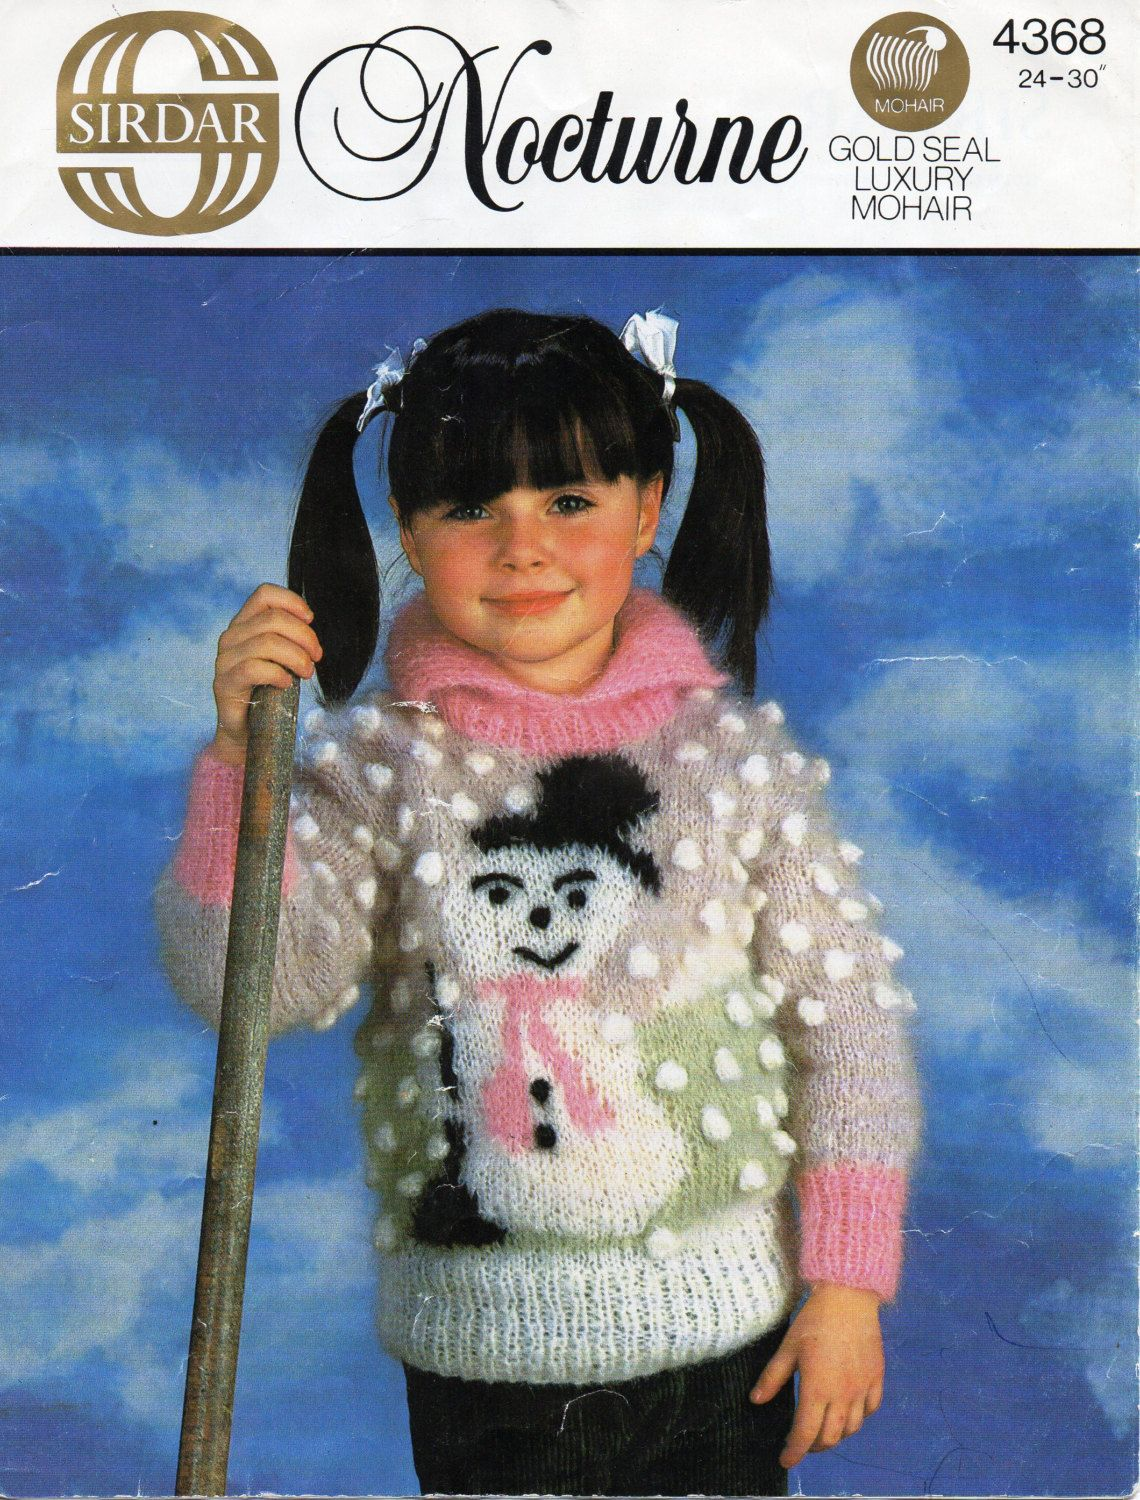 Childrens snowman sweater knitting pattern snowman motif 24 30 childrens mohair sweater knitting pattern snowman motif 24 30 inches 10 ply mohair childrens knitting bankloansurffo Image collections